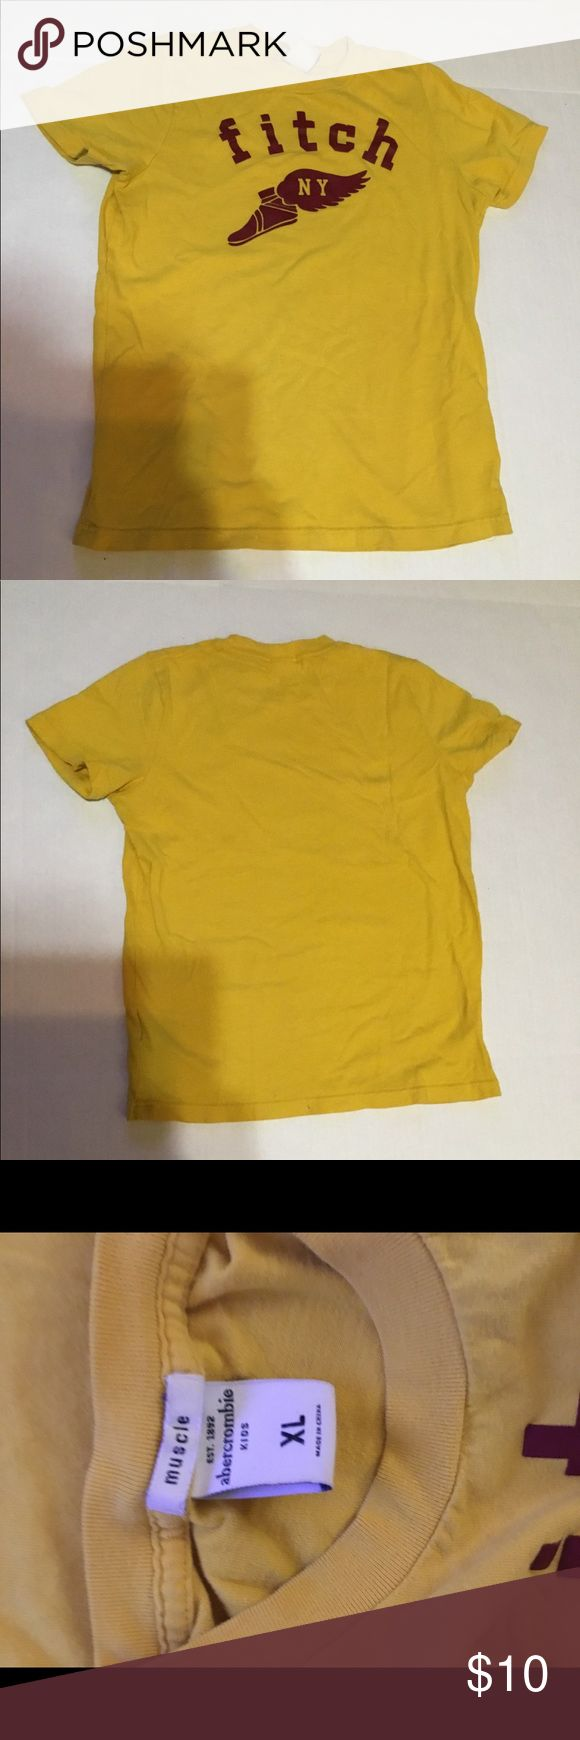 Abercrombie Kids winged foot muscle t shirt sz XL Abercrombie Kids winged foot muscle t shirt sz XL.  Older tee, still nice!  Gold and burgundy.  No rips or stains.  Great graphic! abercrombie kids Shirts & Tops Tees - Short Sleeve